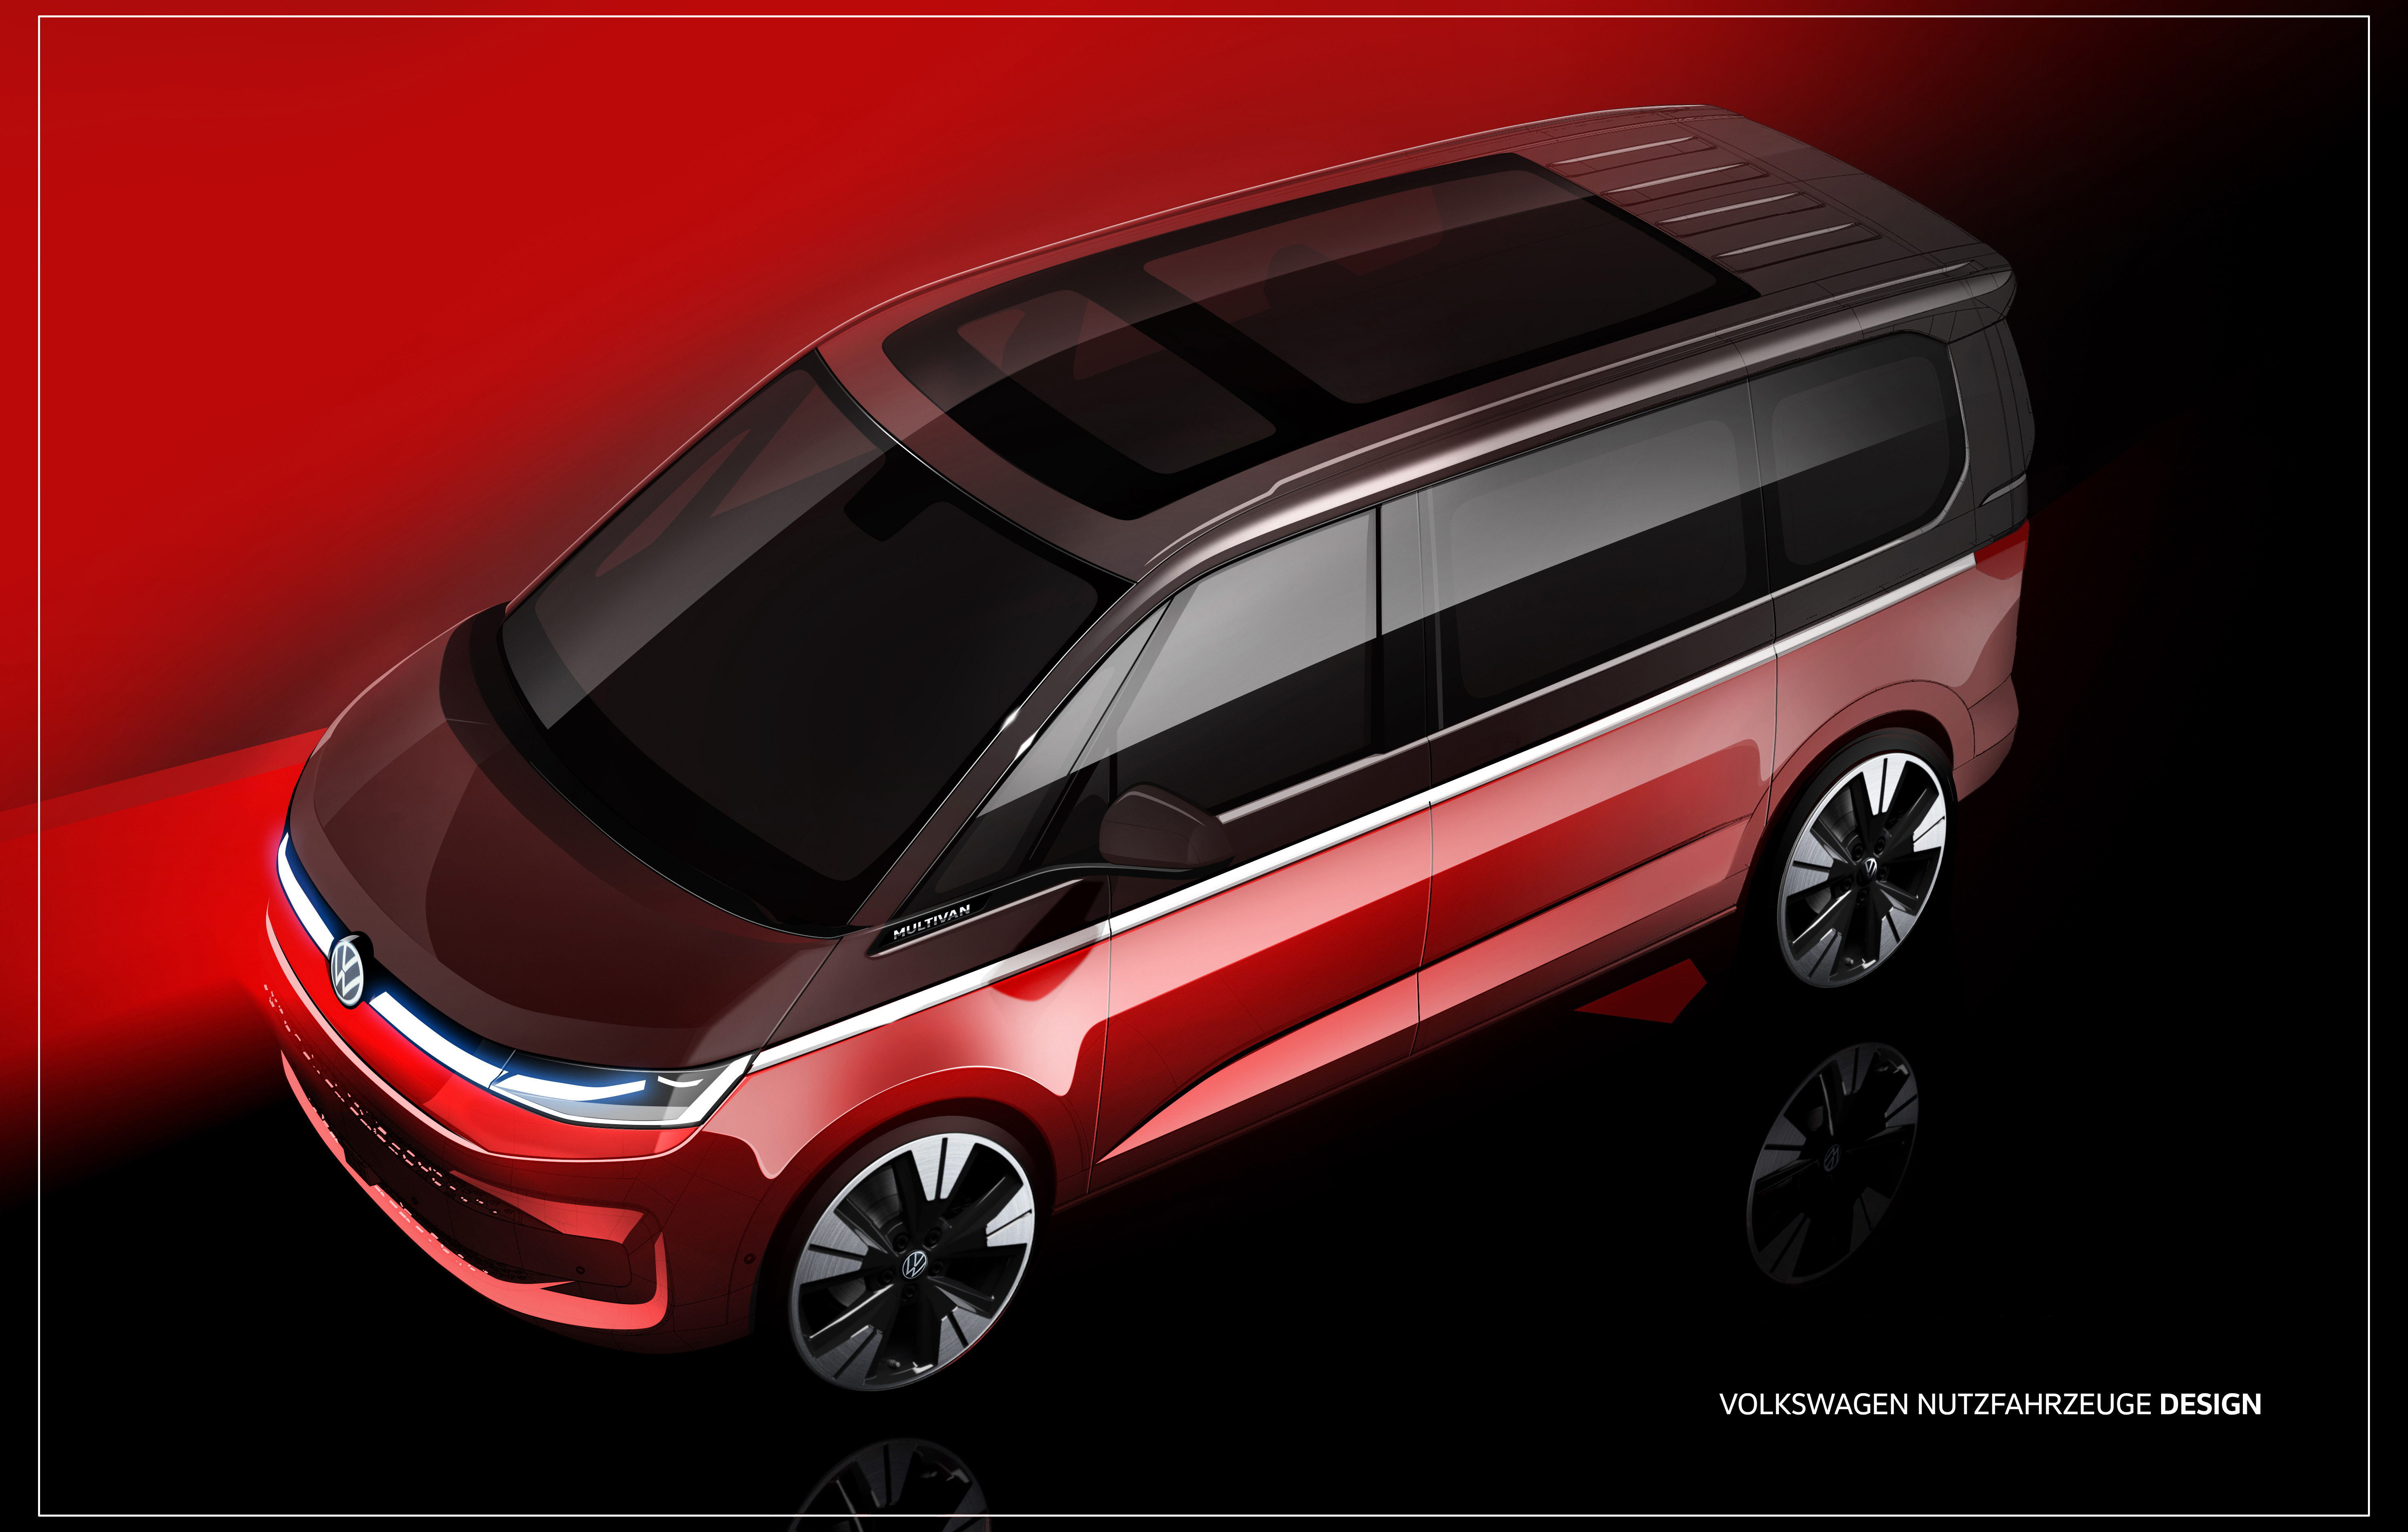 Volkswagen previews the shape and style of the new T7 Multivan